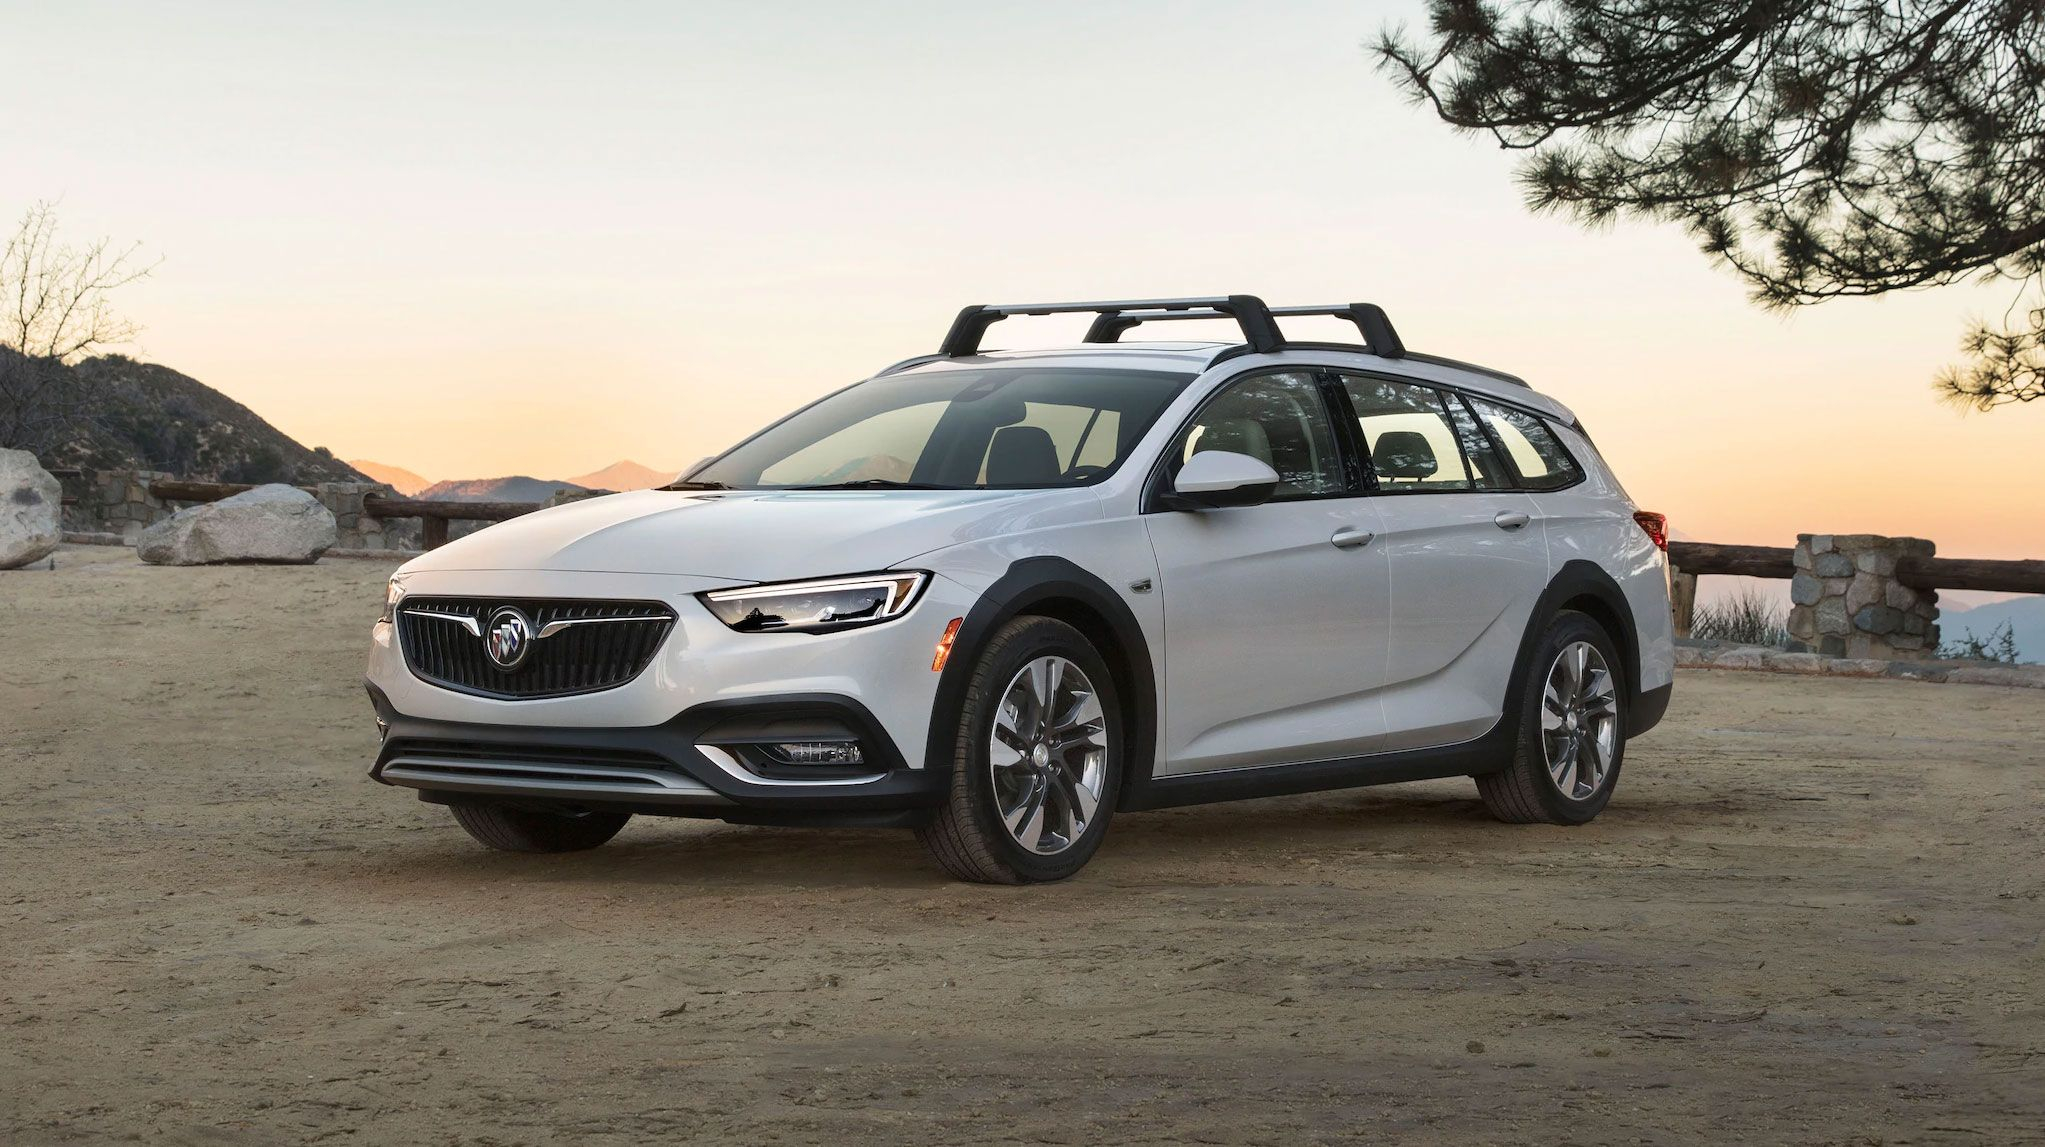 2020 Buick Regal Tourx Review, Pricing, And Specs 2021 Buick Regal Tourx Interior, Brochure, Preferred